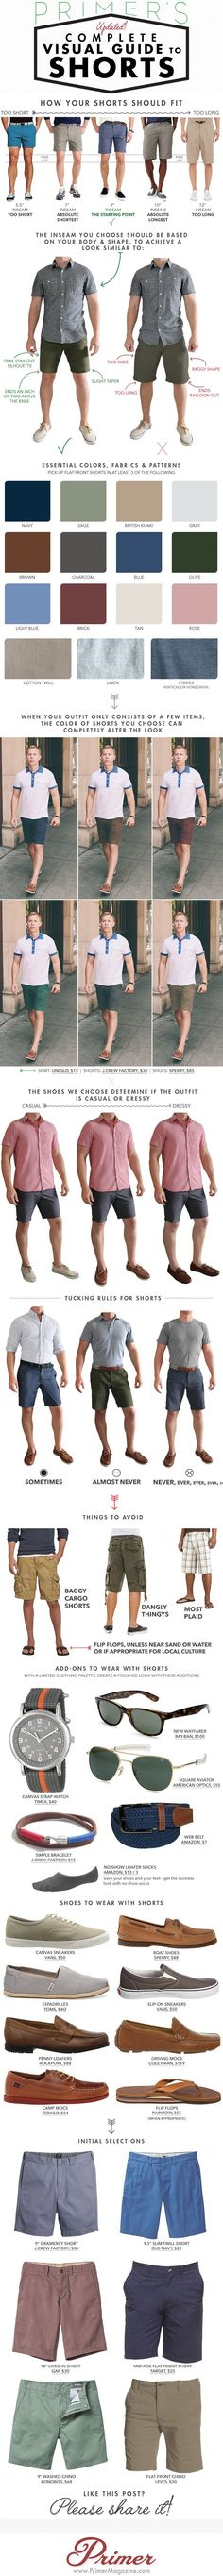 Stay cool and look smart this summer with our complete visual guide for all things shorts, covering fit and fabric to shoes and accessories. Like the Clif notes guide to men's summer fashion. Mode Outfits, Fashion Outfits, Fashion Tips, Fashion Trends, Fashion Clothes, Fashion Ideas, Fashion Check, Style Clothes, Fashion Pants